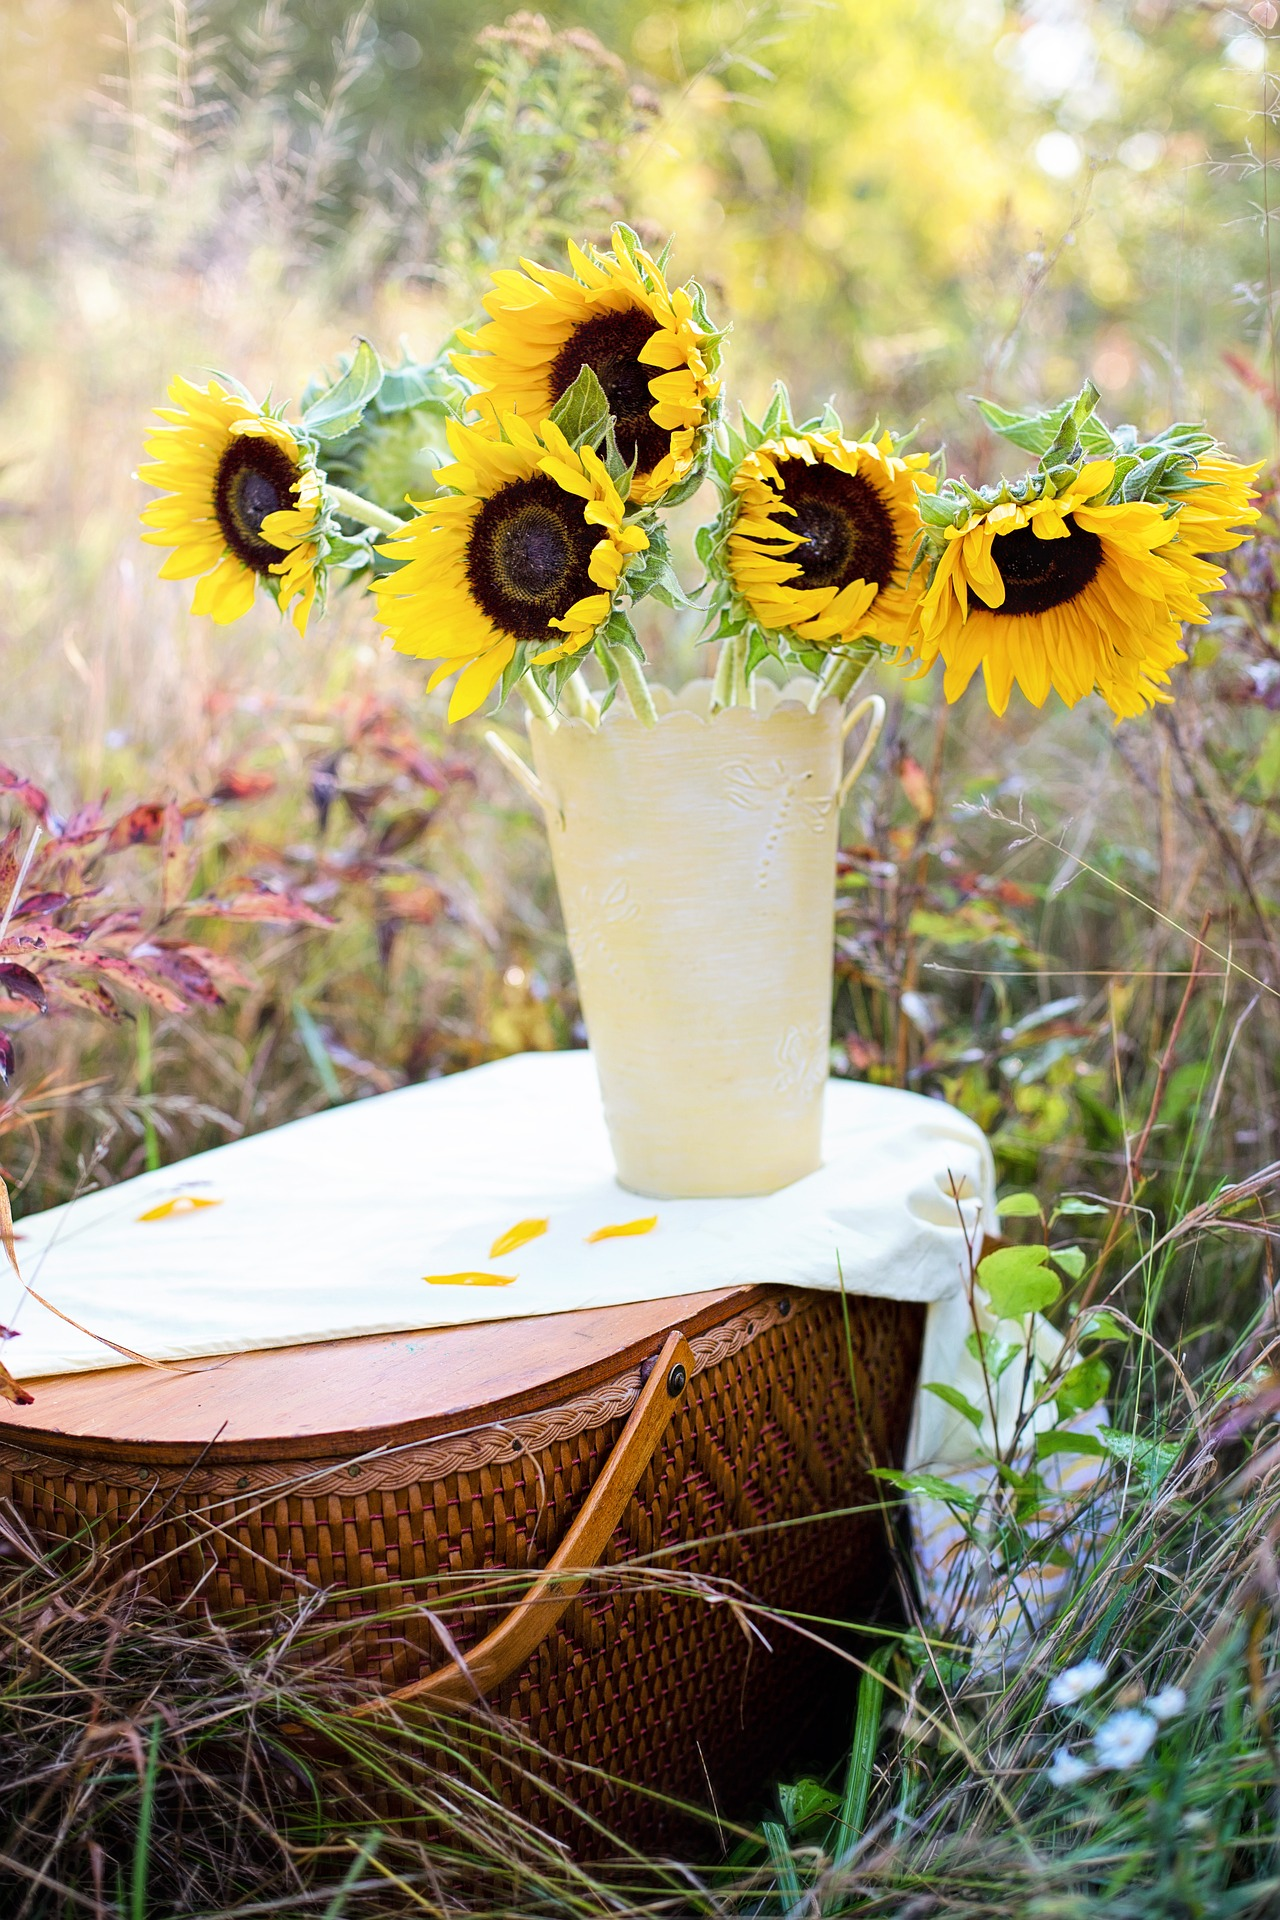 Sunflowers in the pot photo